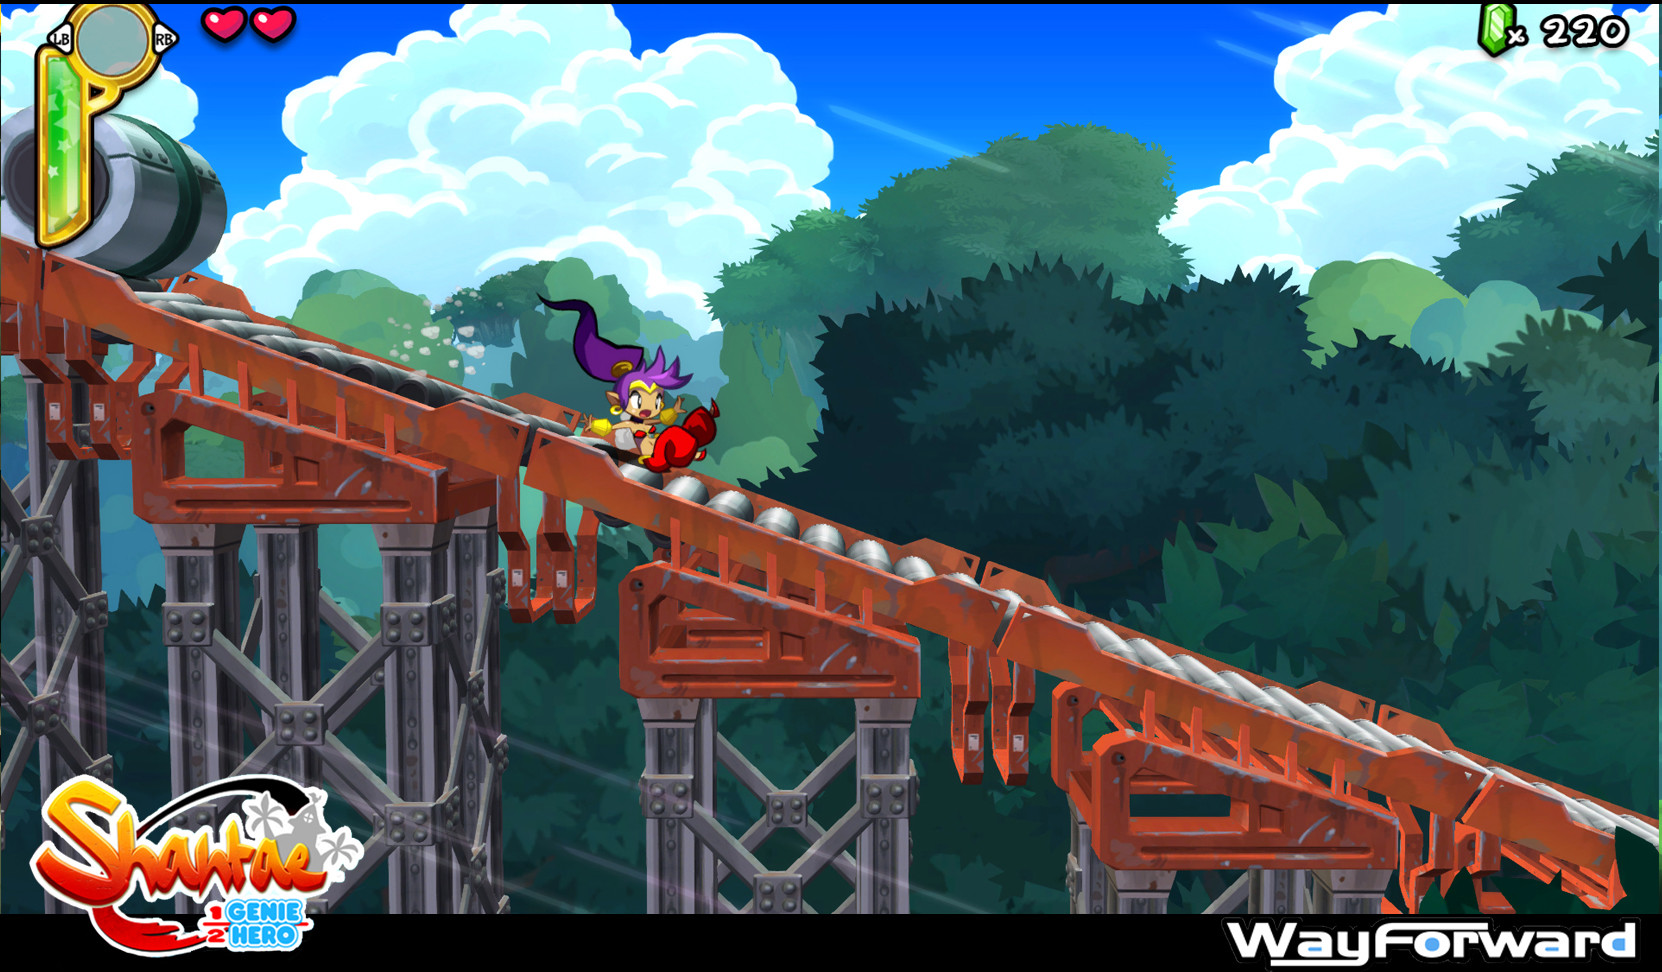 Anthony trujillo at shantae 06